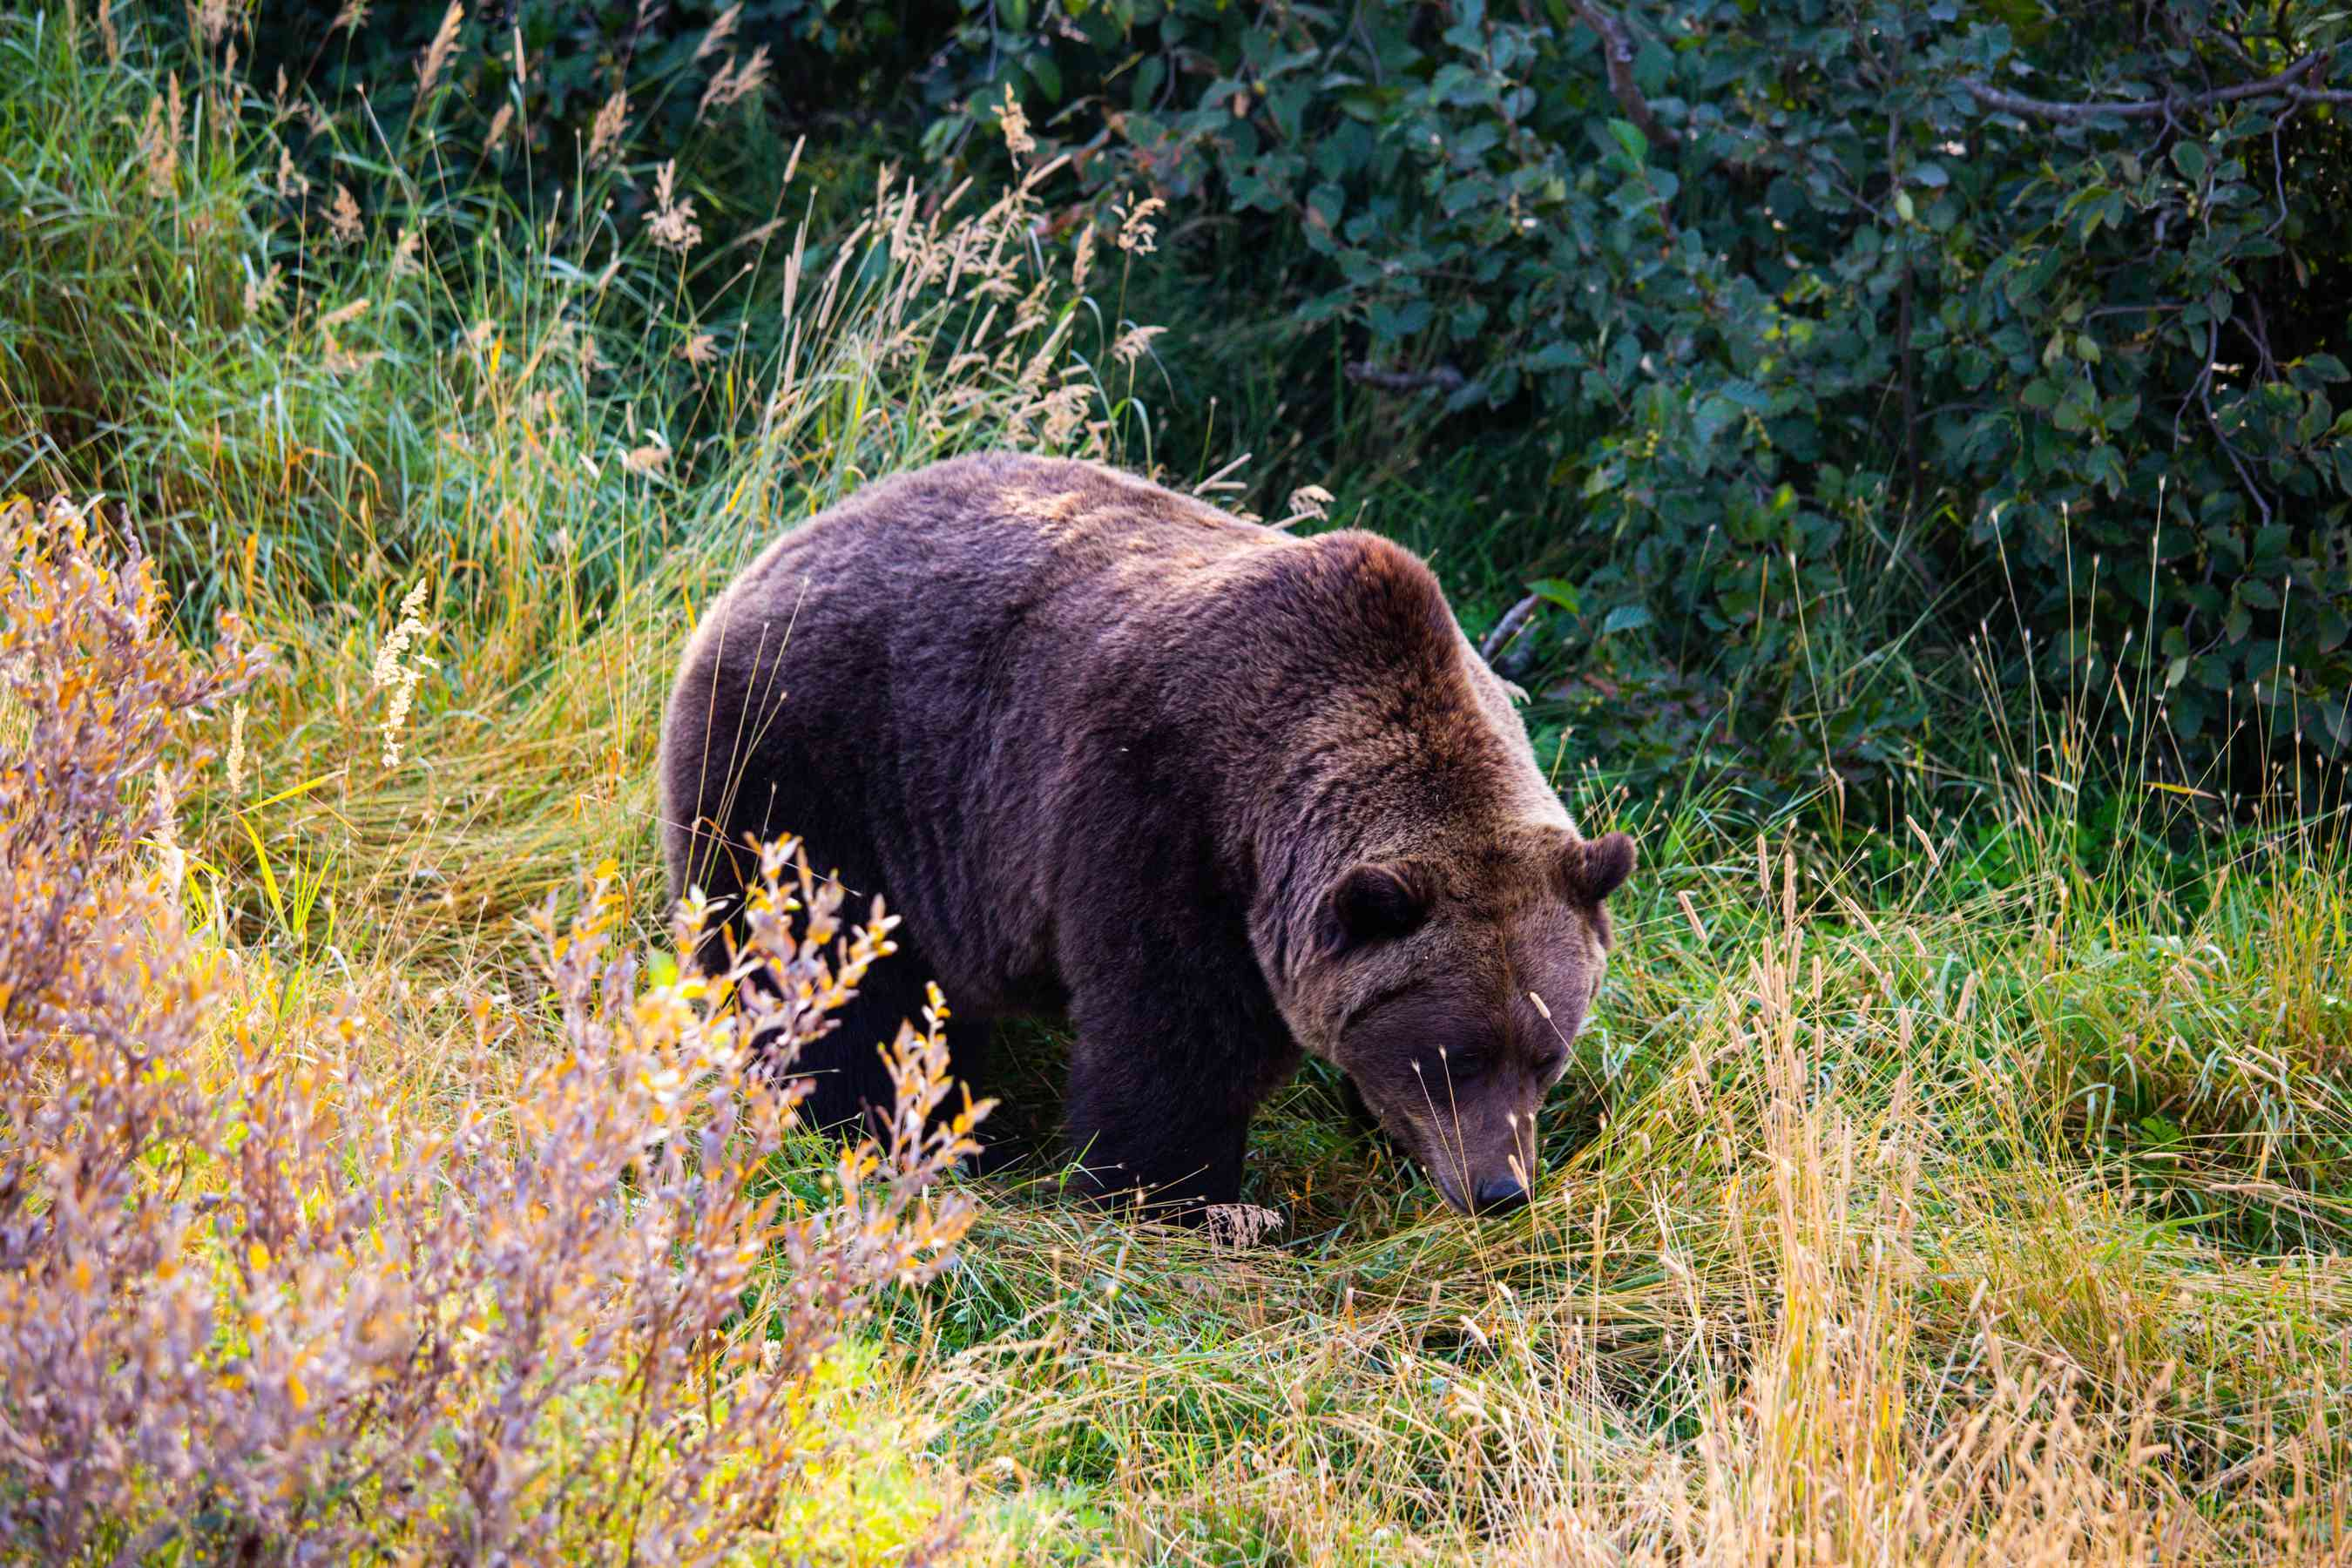 A brown bear in the Wildlife Conservation Center